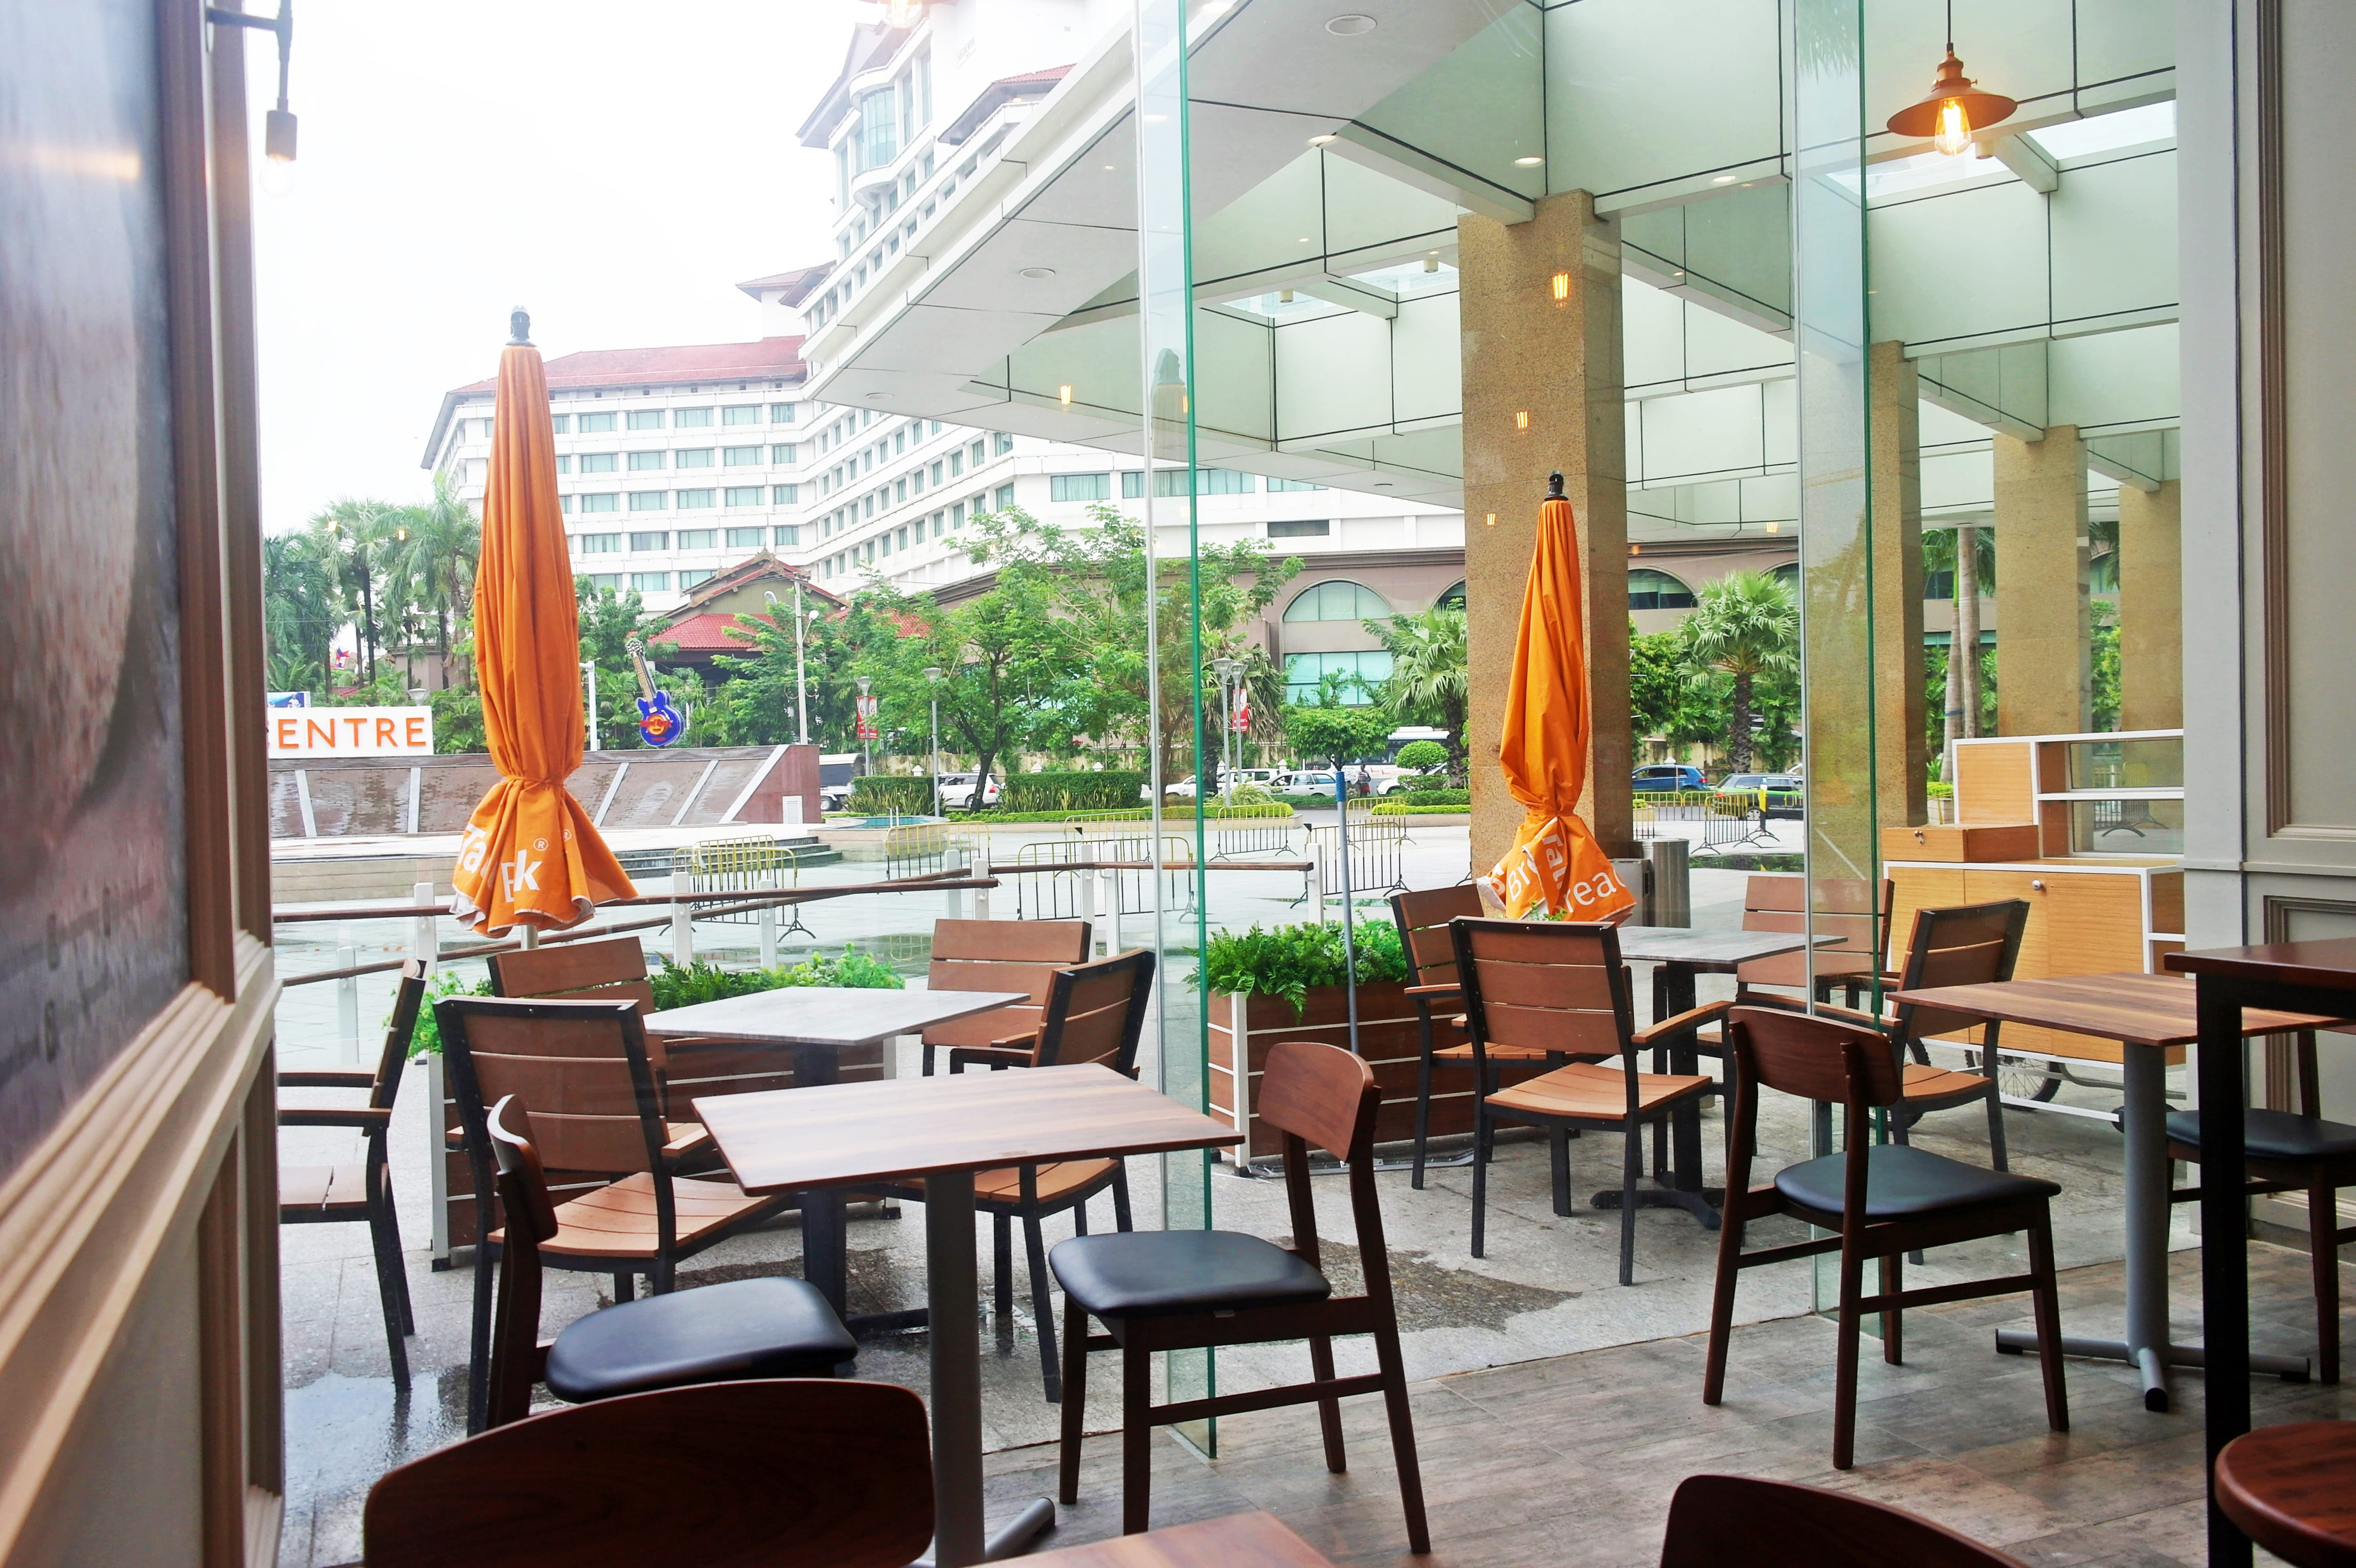 Breadtalk, Myanmar Plaza - Yangon, Myanmar | Product Seen: [Fossil Outdoor Armchair, Ottawa Chair, Isotop - Outdoor Table Top – Indian Rosewood colour & Isotop - Outdoor Table Top – Cement colour]